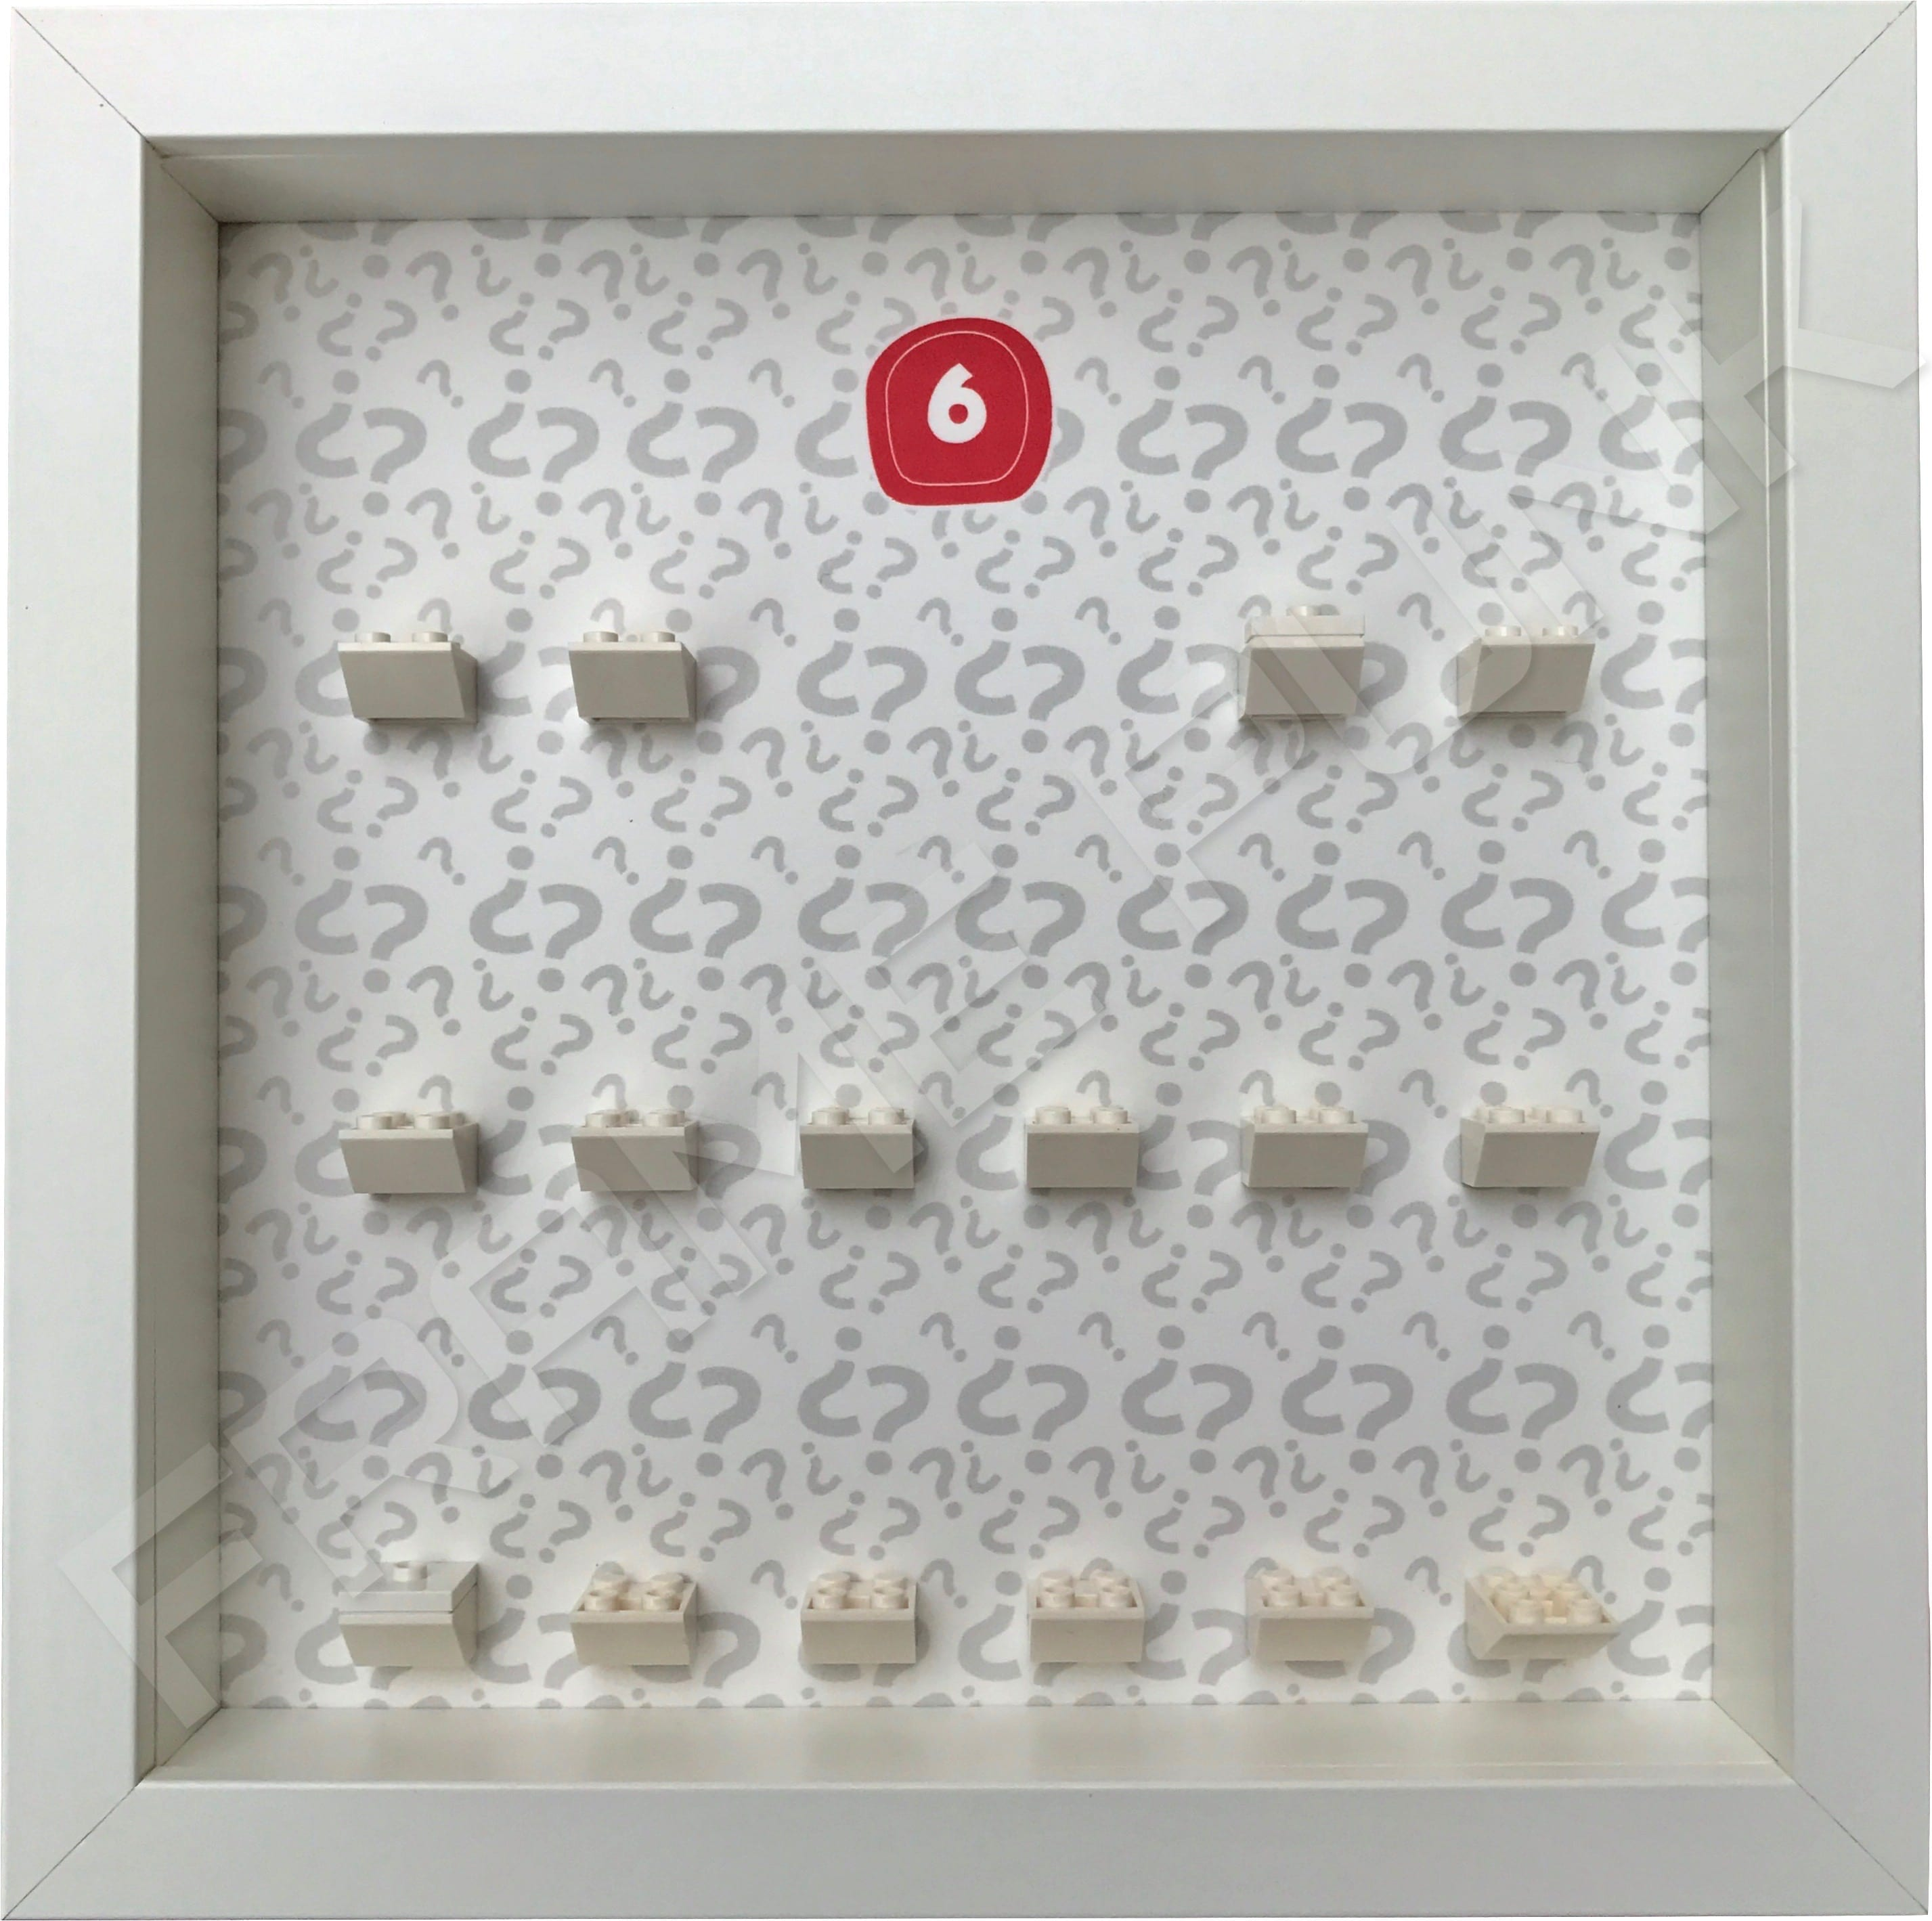 Lego minifigures series 6 display frame